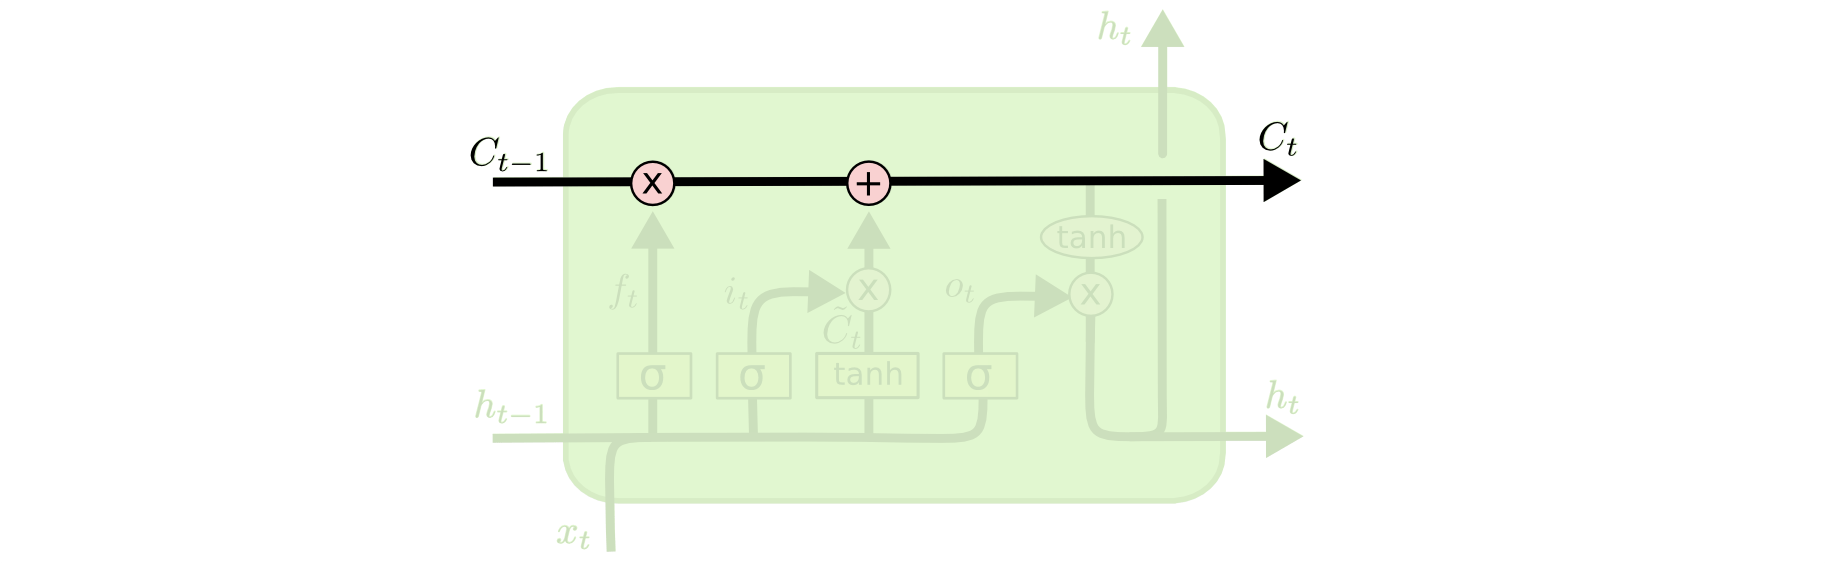 hight resolution of the lstm does have the ability to remove or add information to the cell state carefully regulated by structures called gates